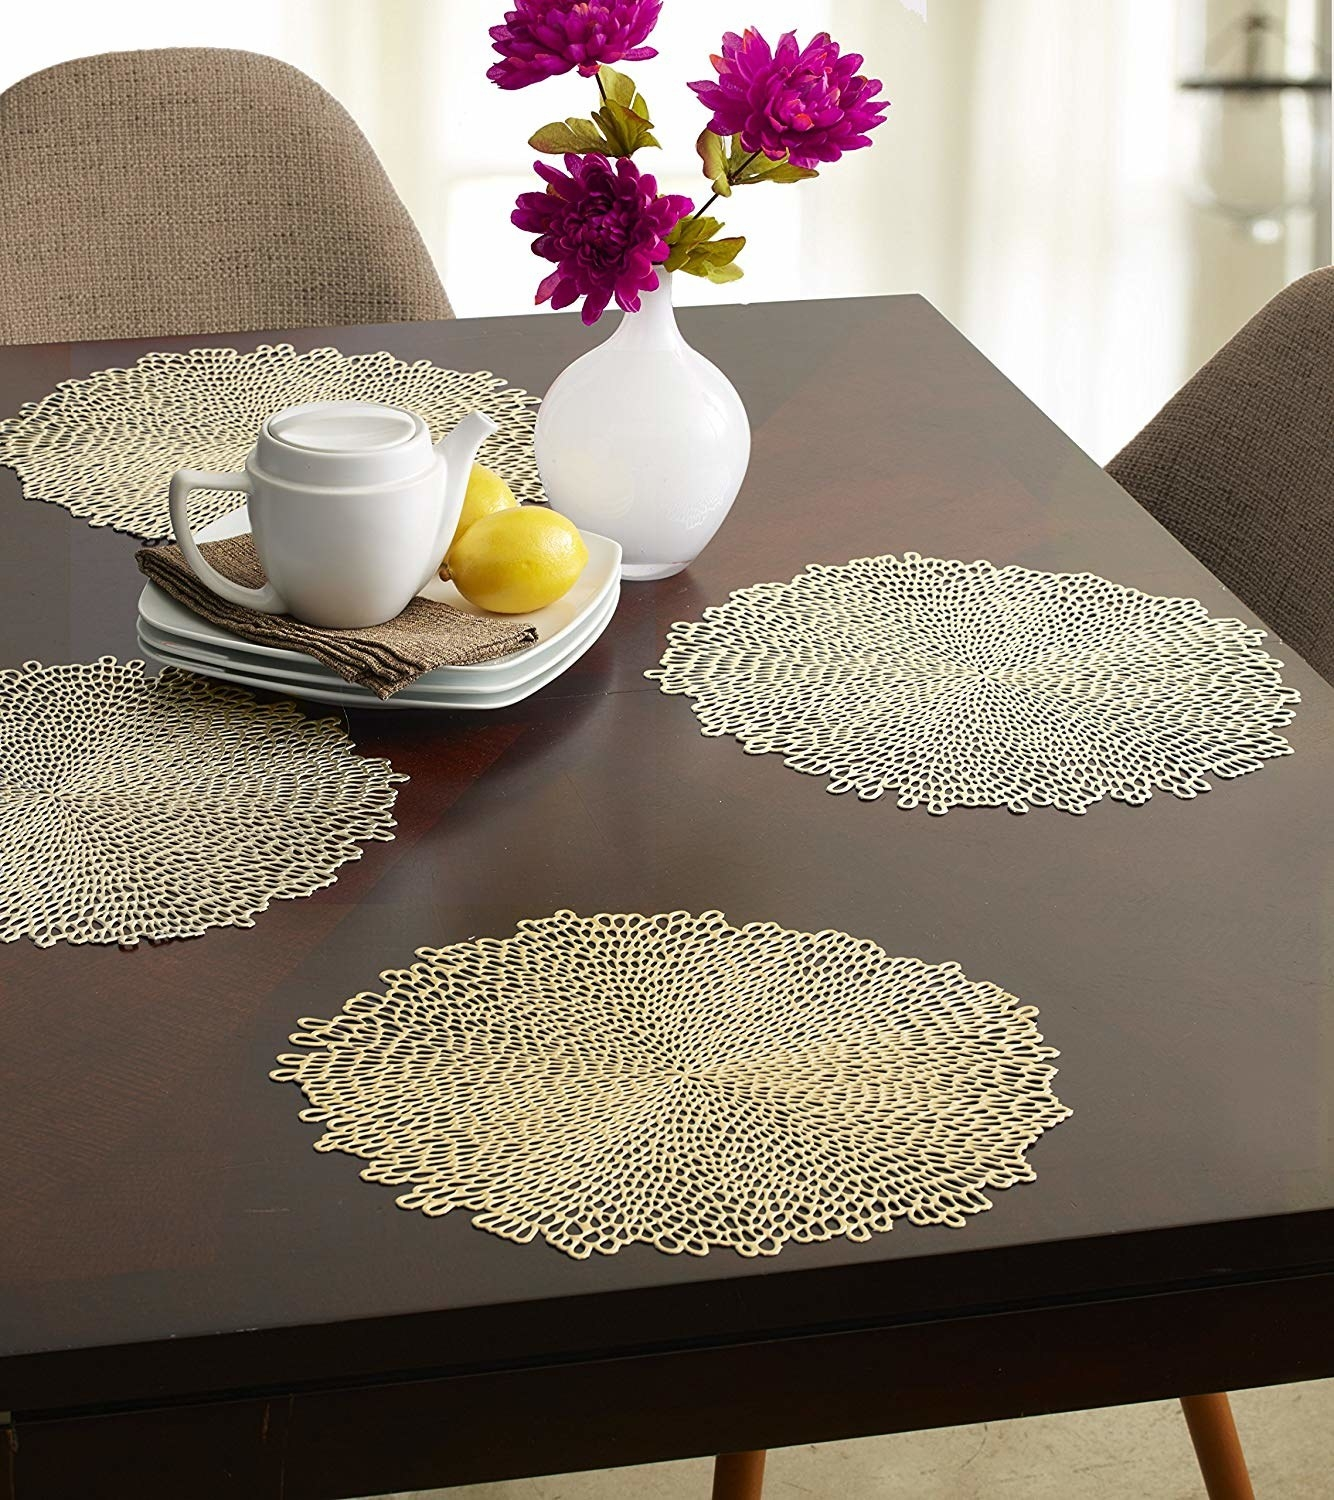 Four metallic placemats on a table with a vase of flowers and dinnerware